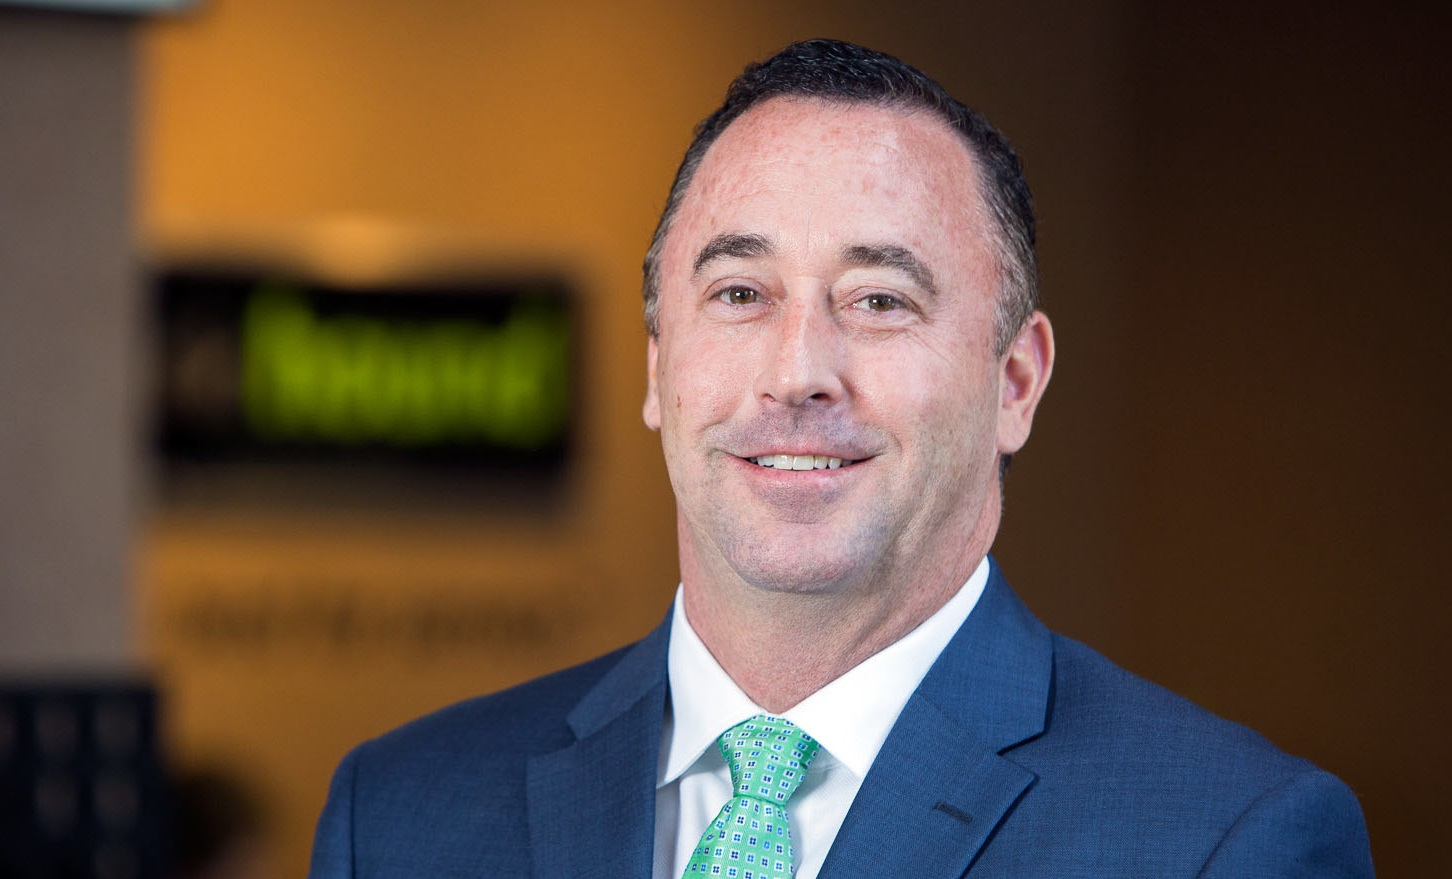 Matt oversees all aspects of Sparkhound's accounting, budgeting, business support, financial planning and analysis functions. He began his career (click for full bio)